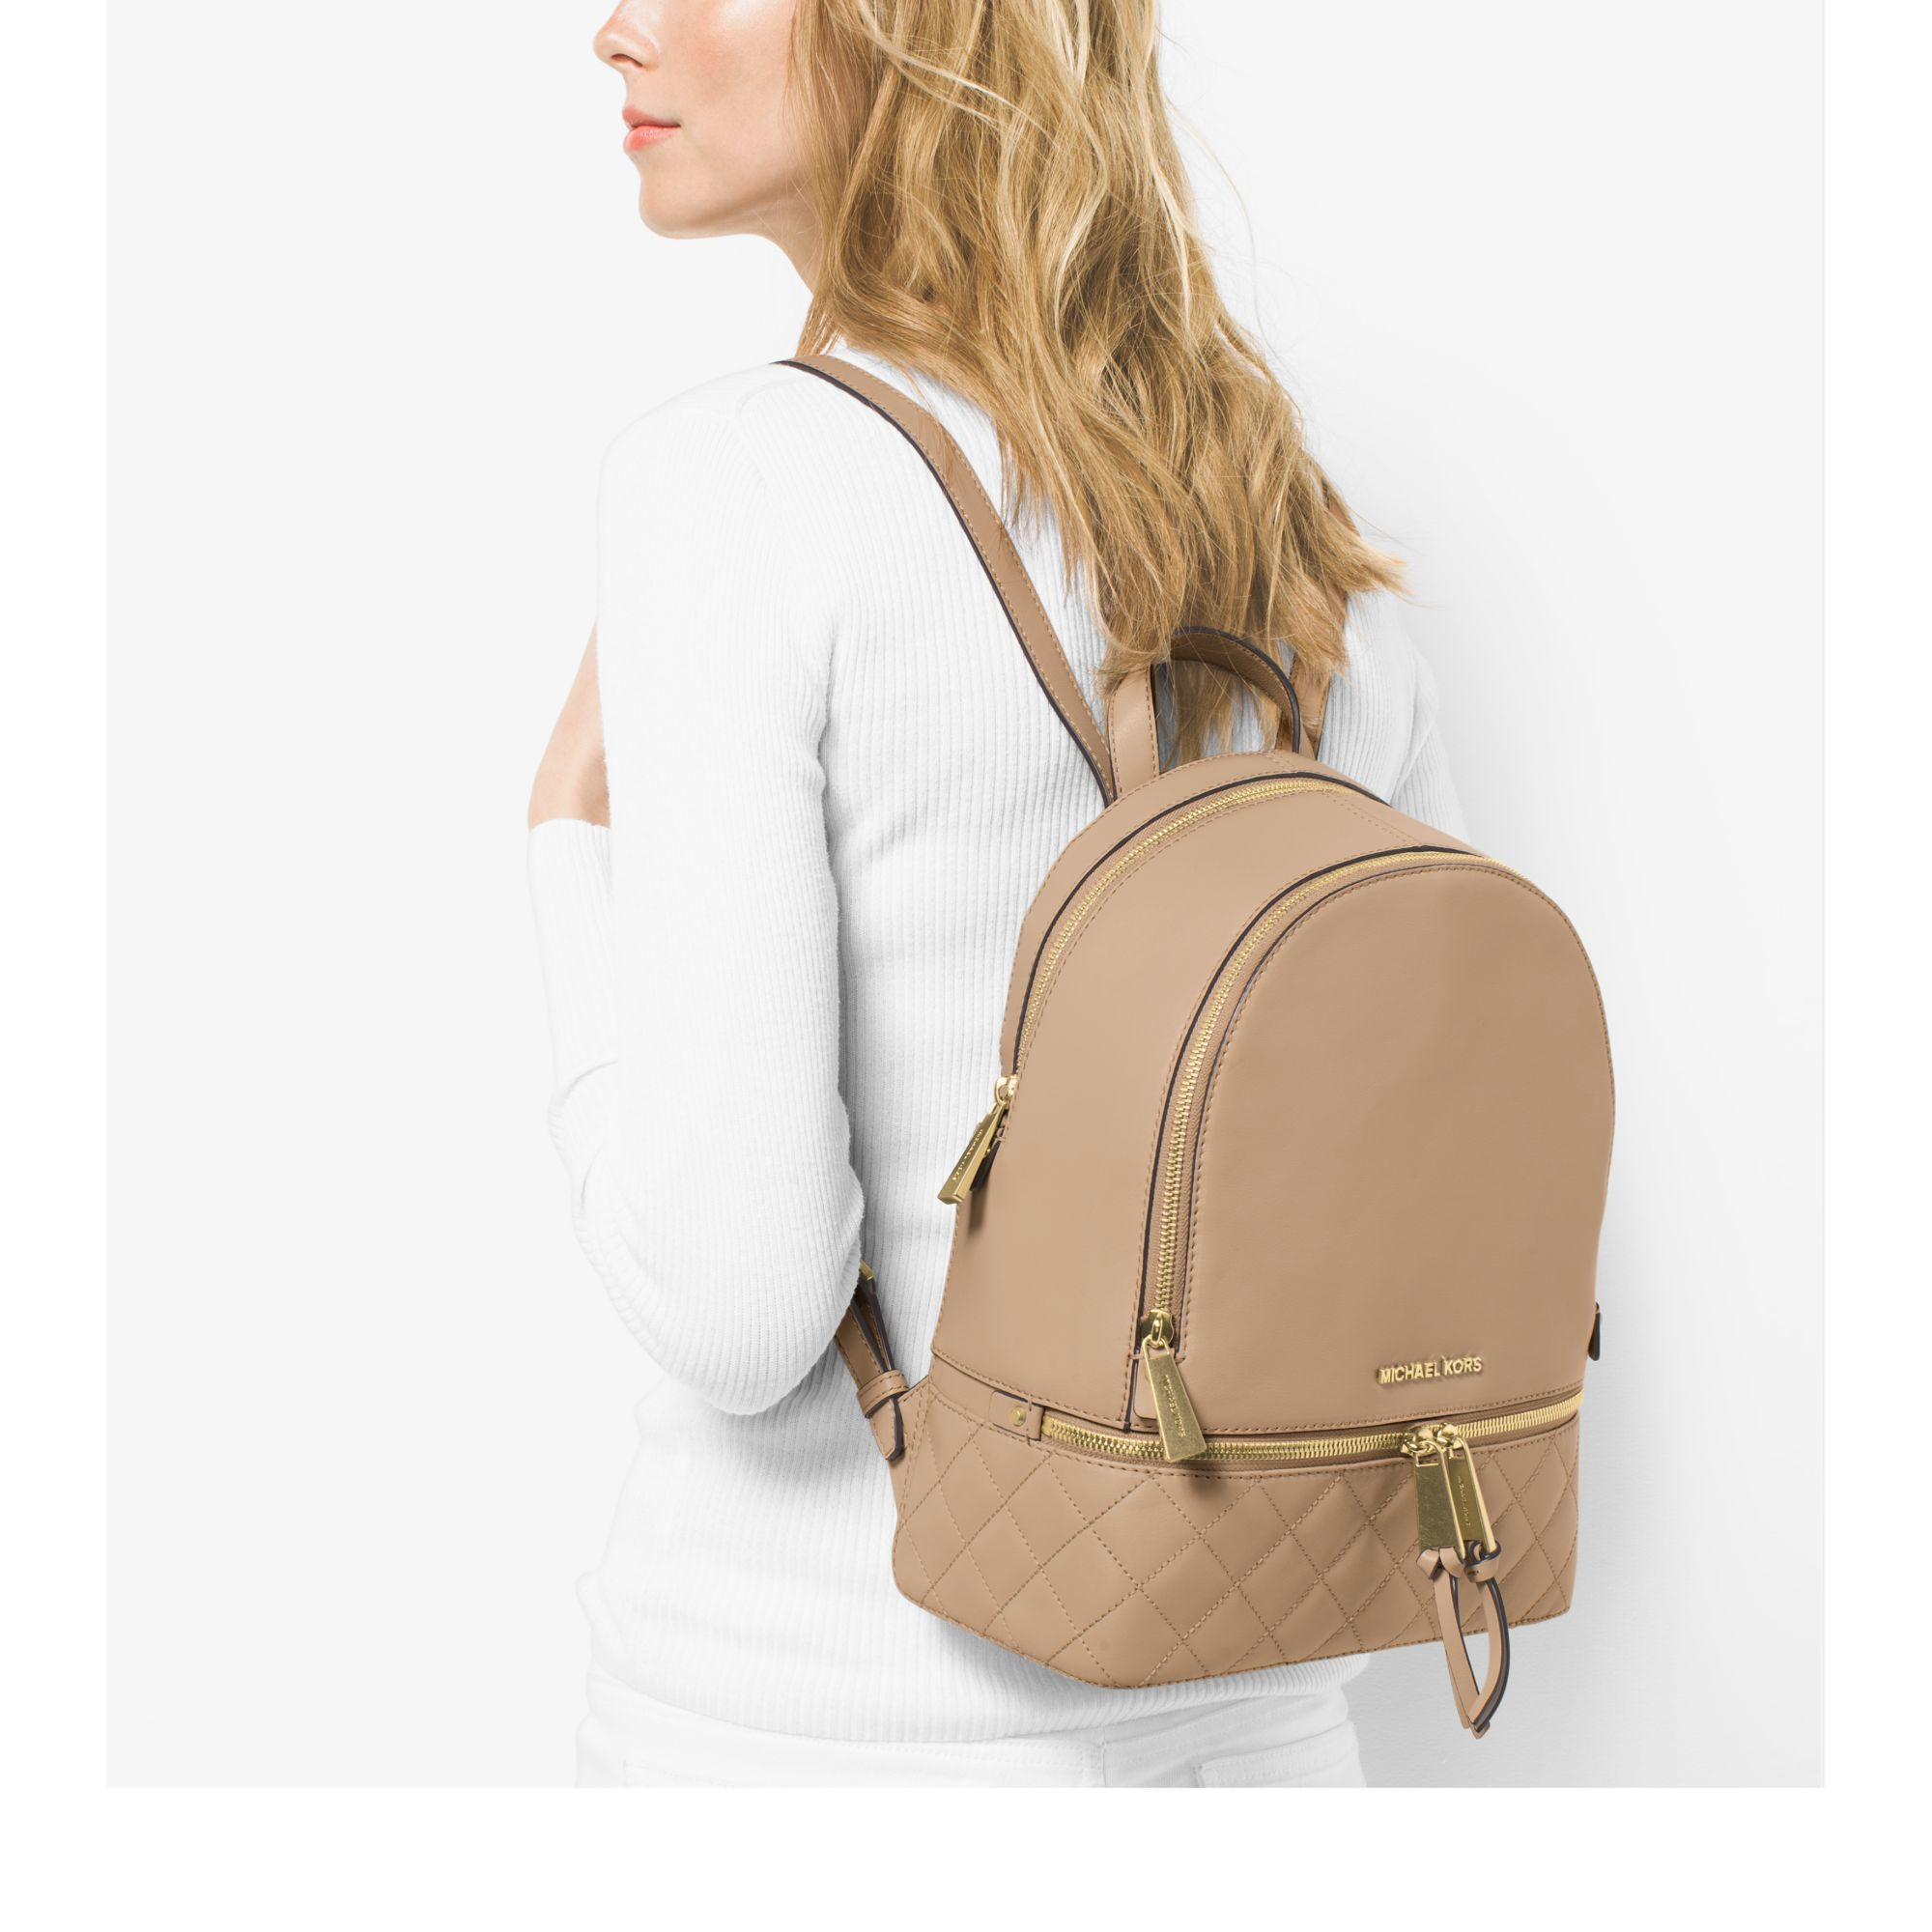 4e7a0fe51a602 ... Michael kors Rhea Medium Quilted-leather Backpack in Natural ...